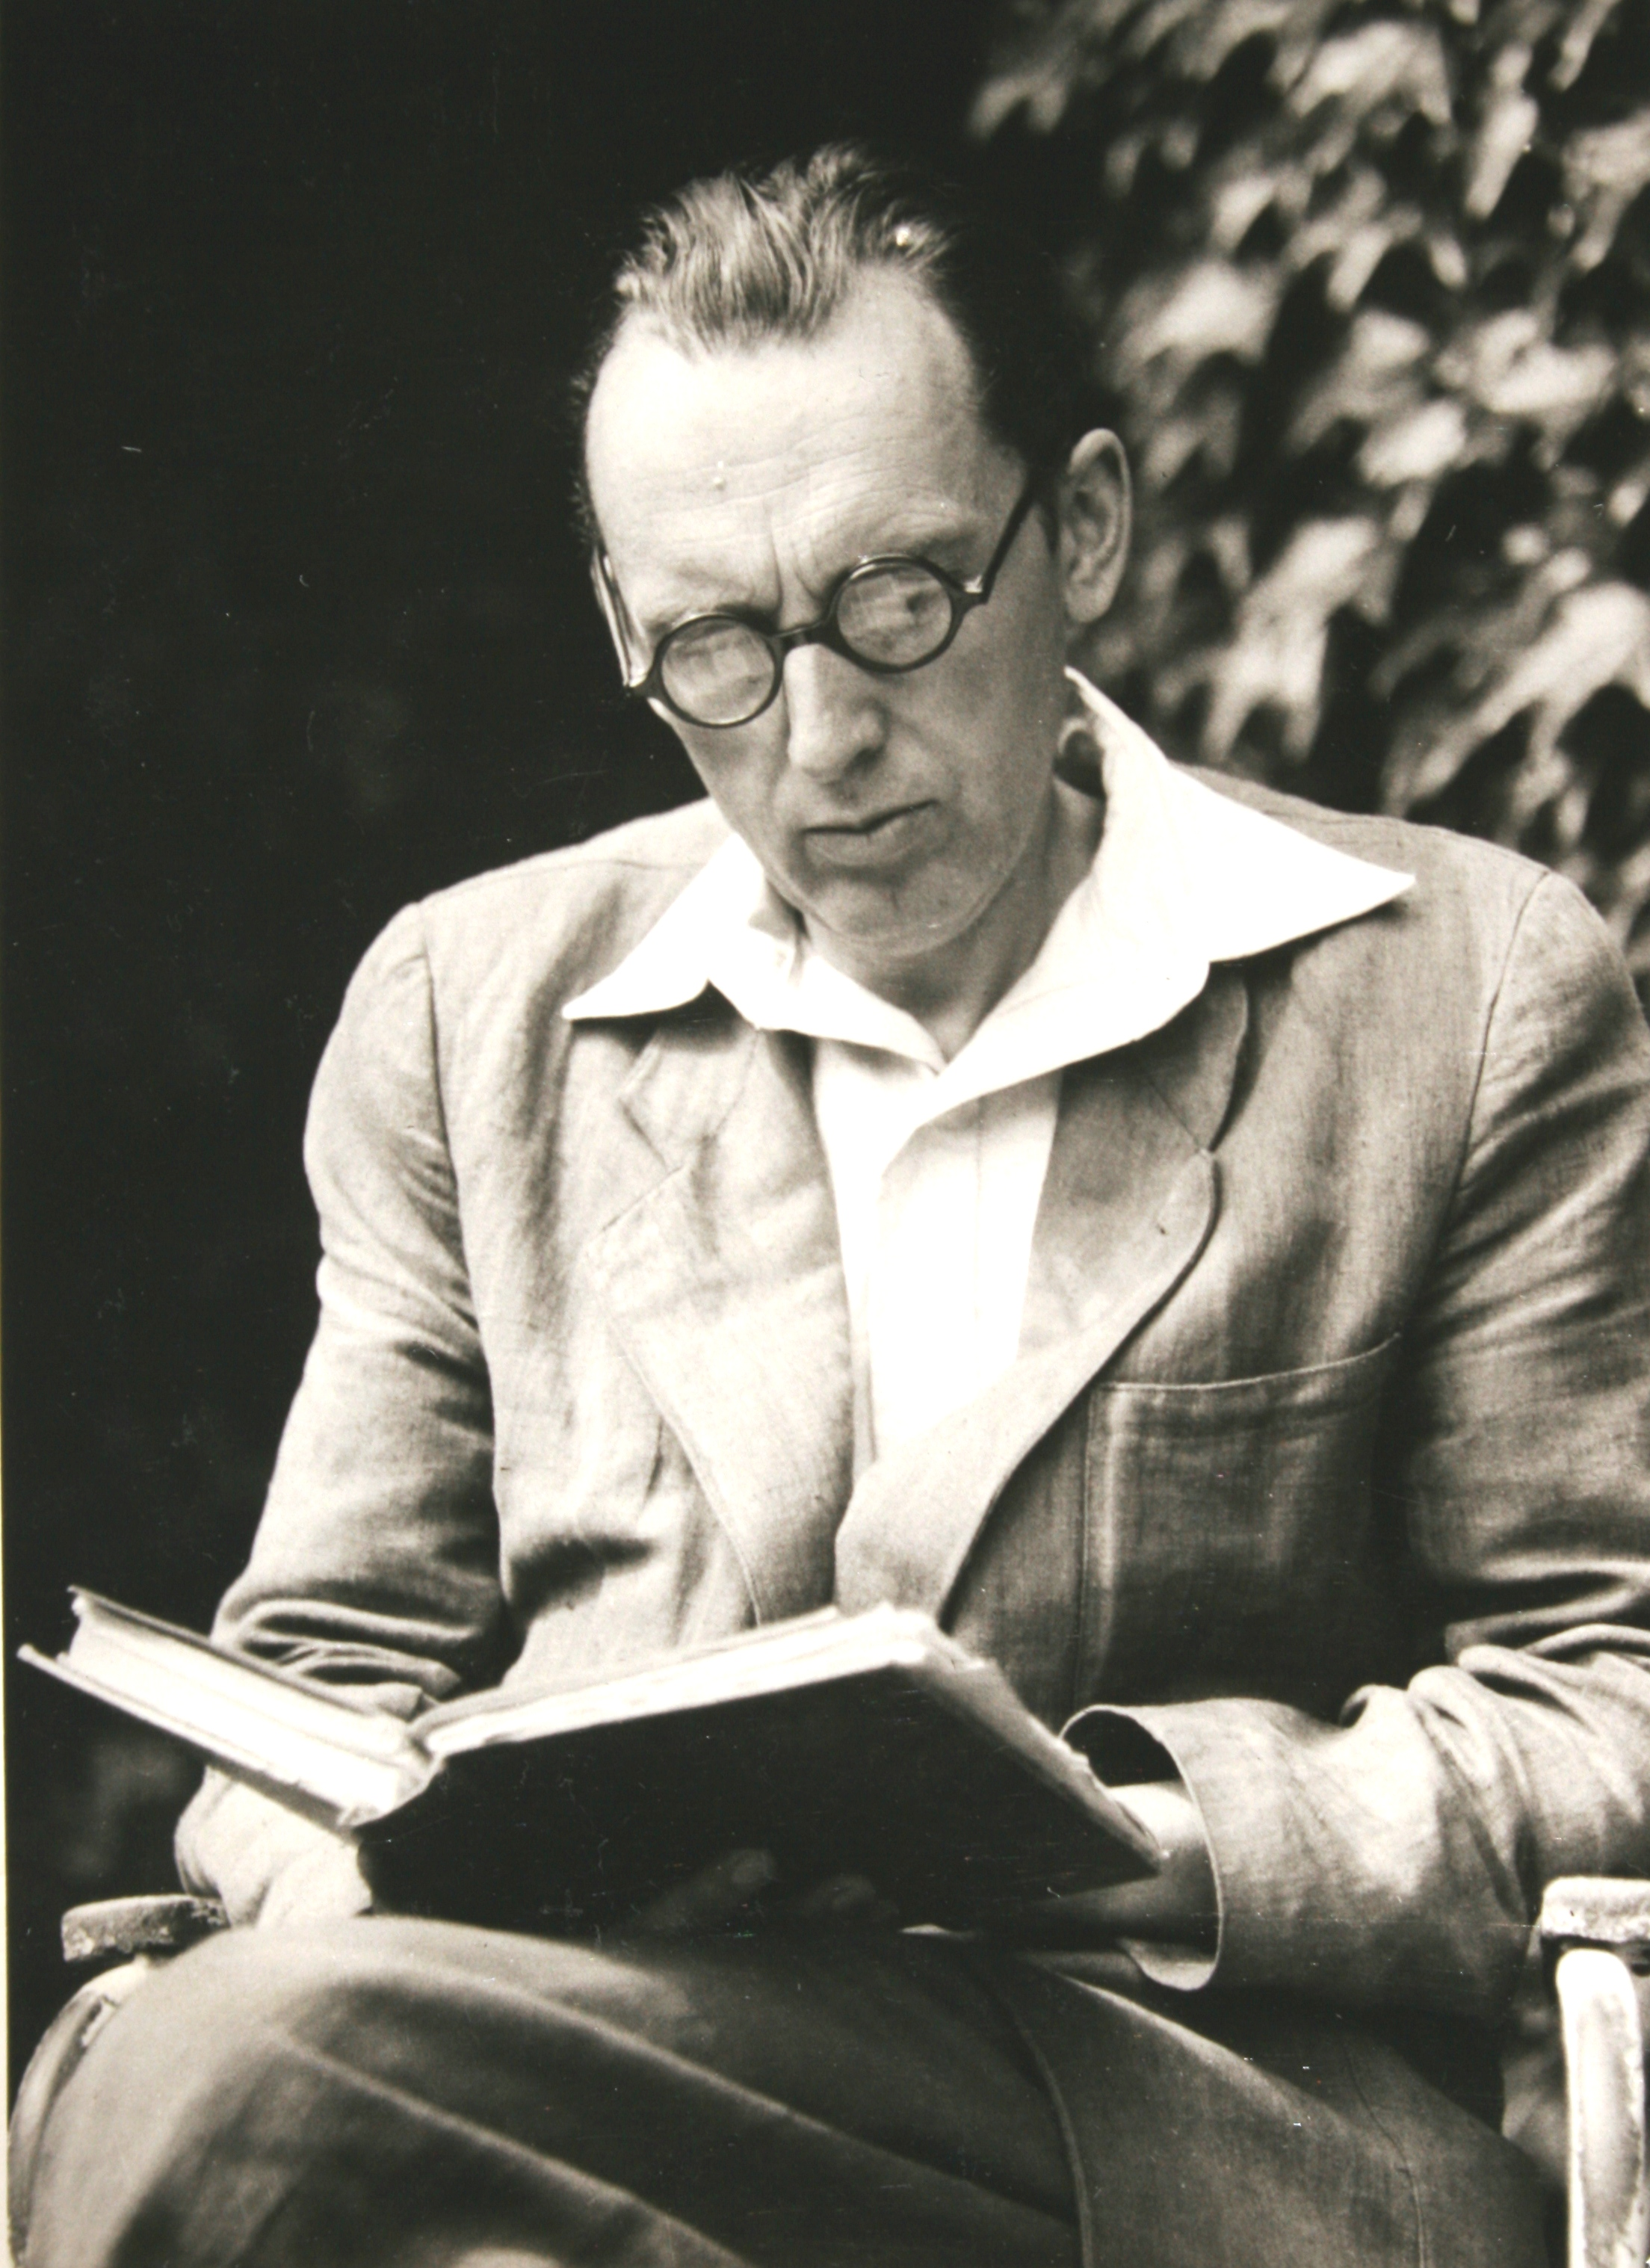 István Bibó reading in the garden, Leányfalu, before 1956